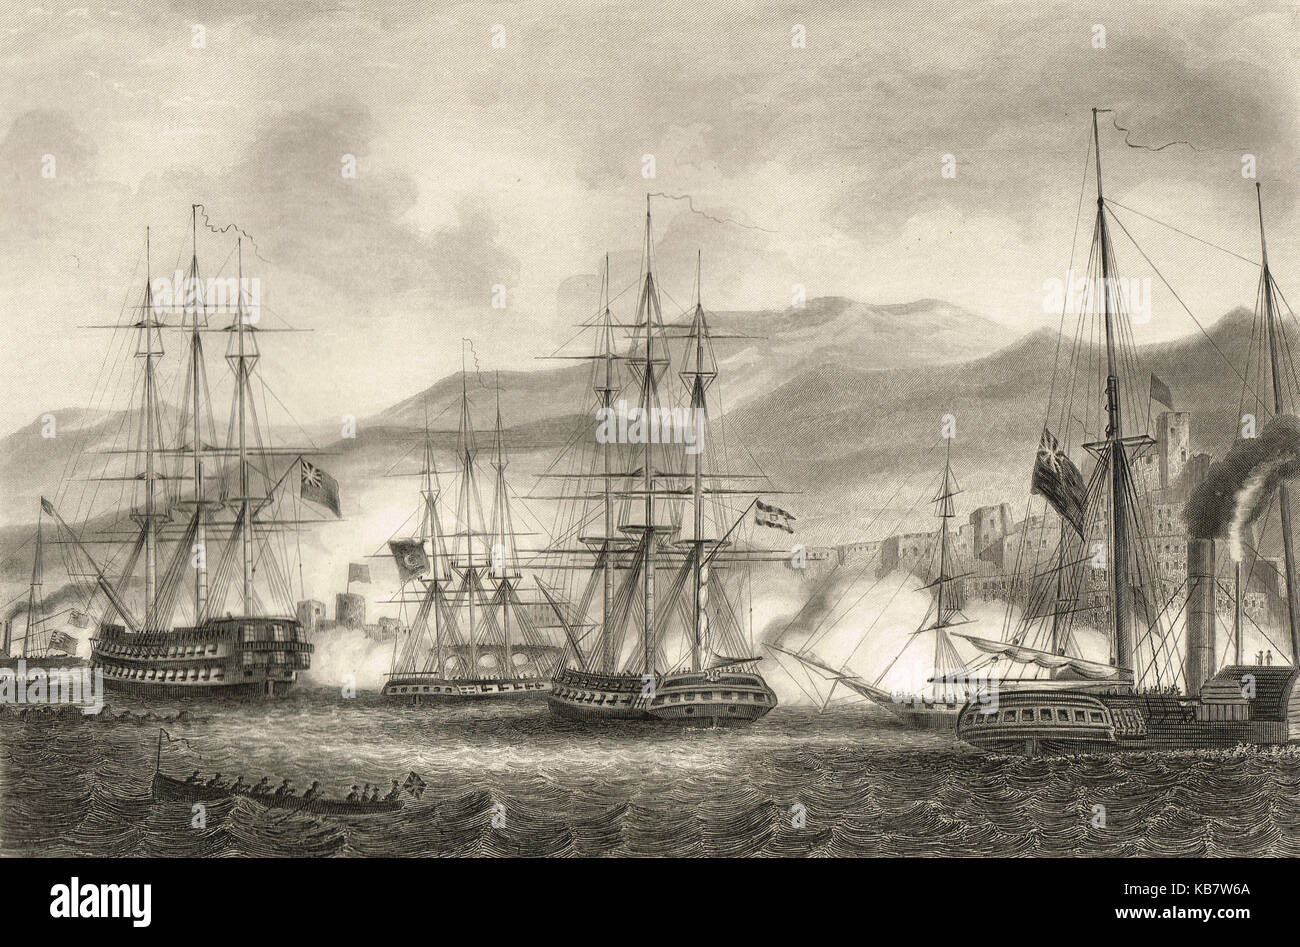 Attack on Sidon, led by commodore Charles Napier, 1840 - Stock Image